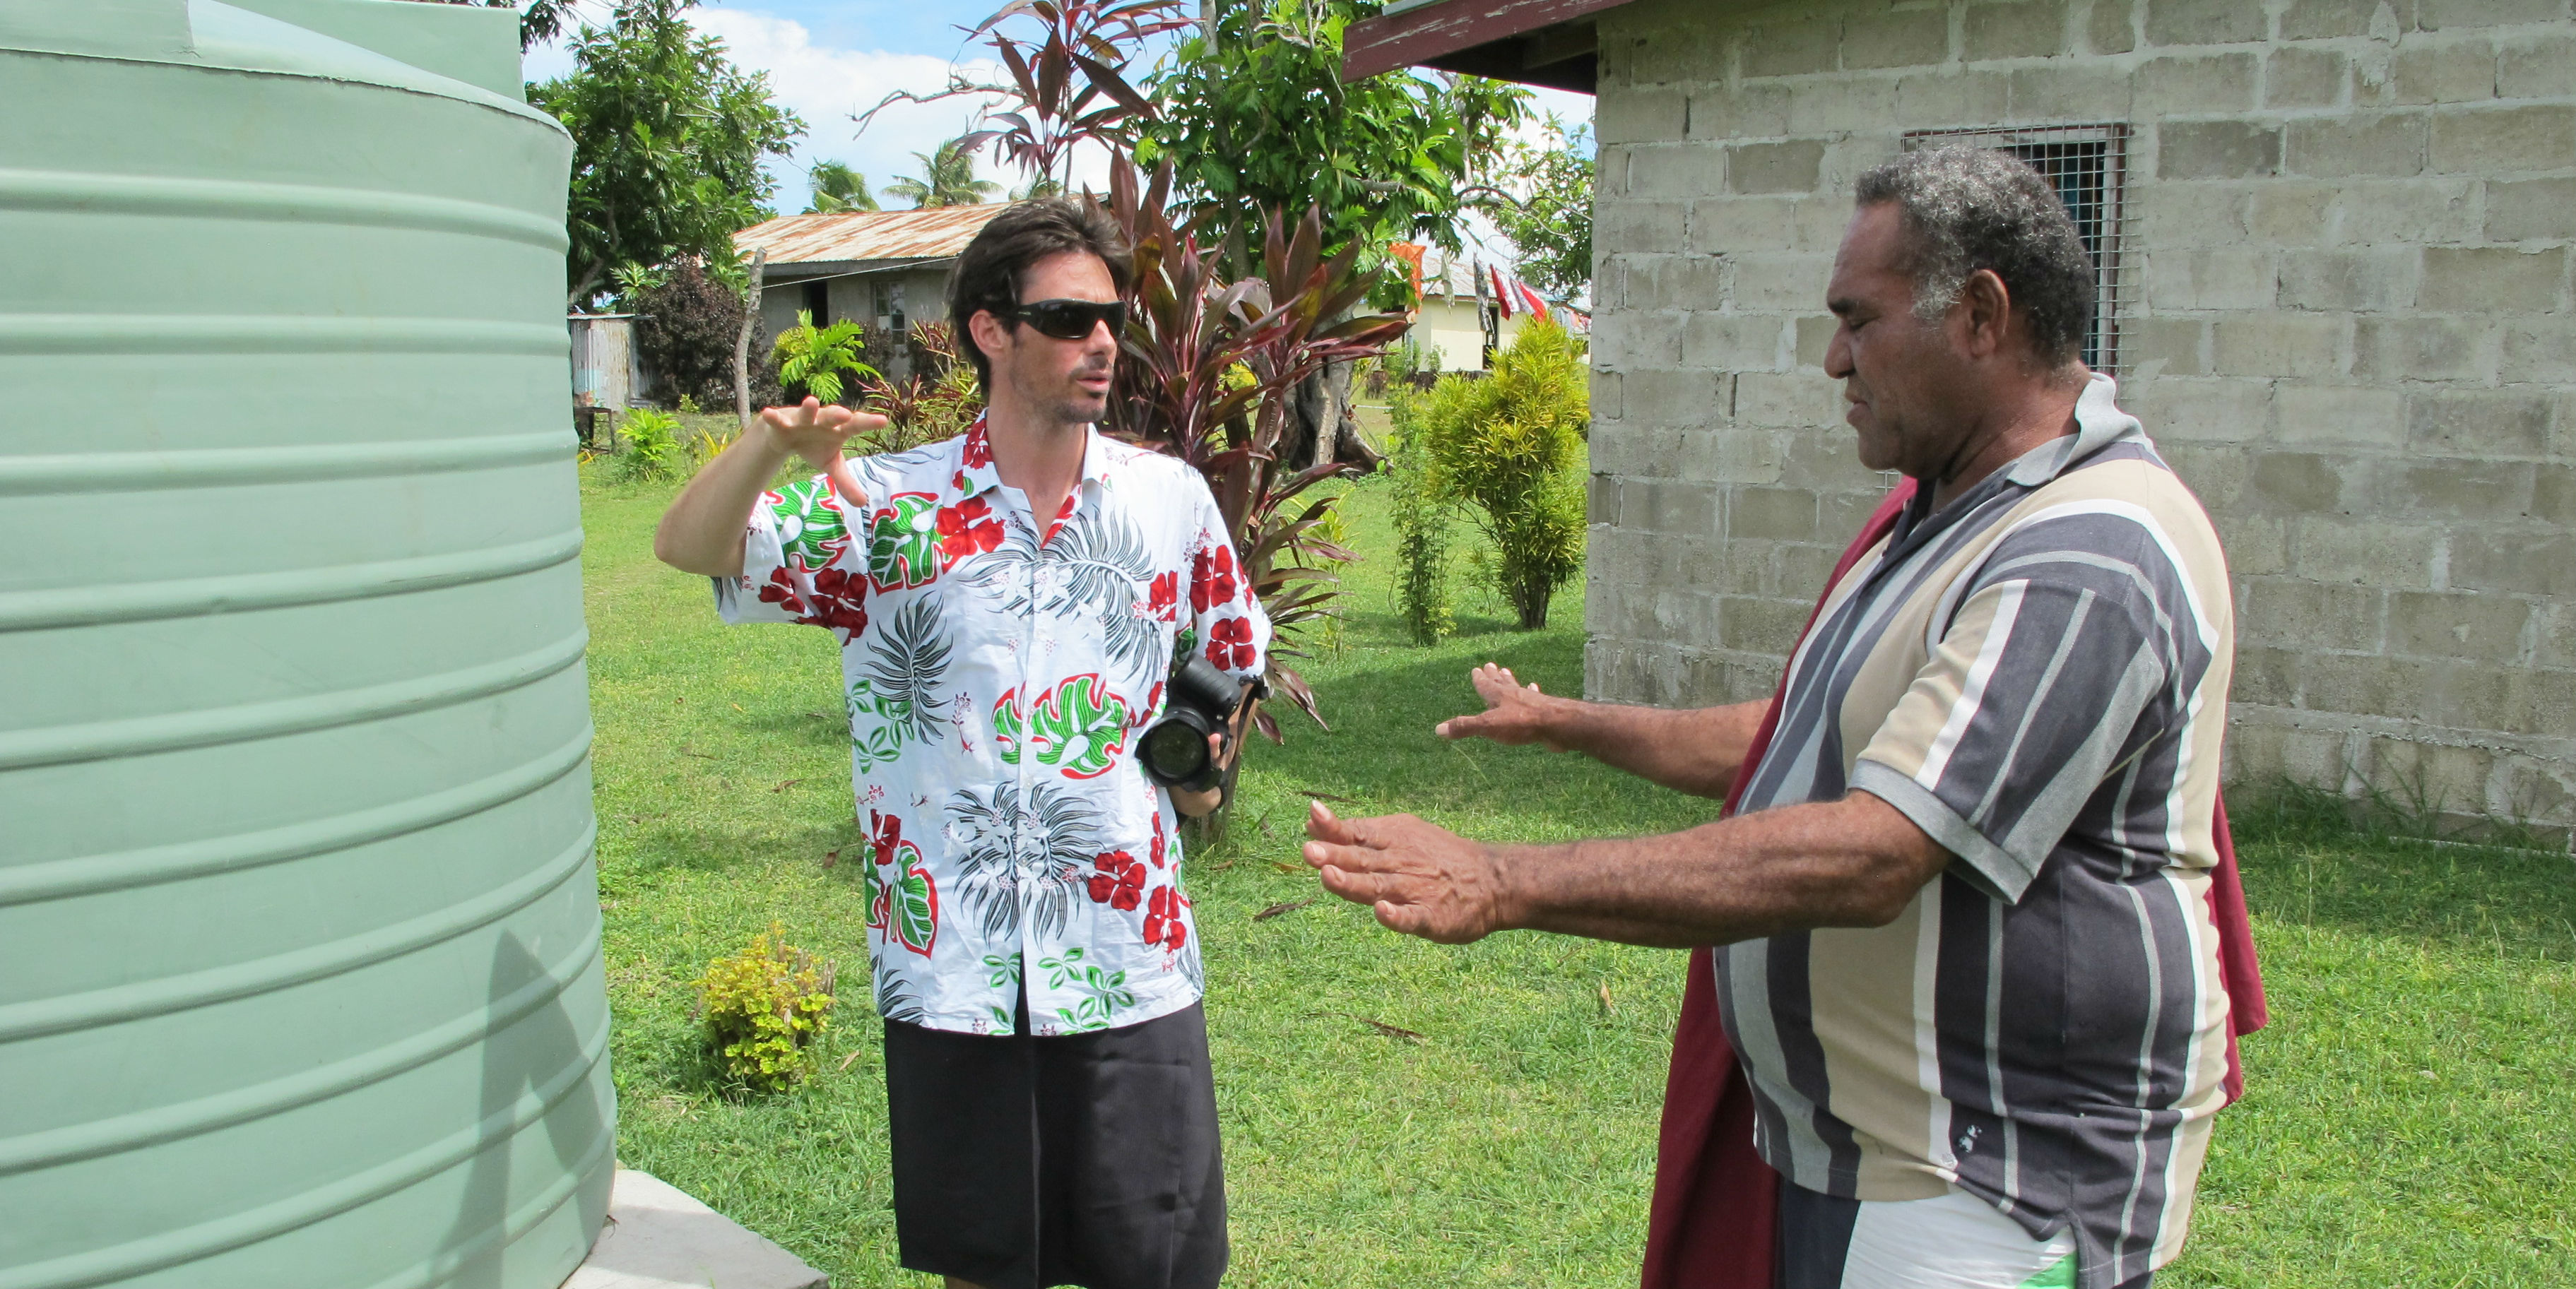 A GVI participant engages with a community member about a water tank, in Fiji. Working on water security is one of the best things you can do as an adult volunteer.